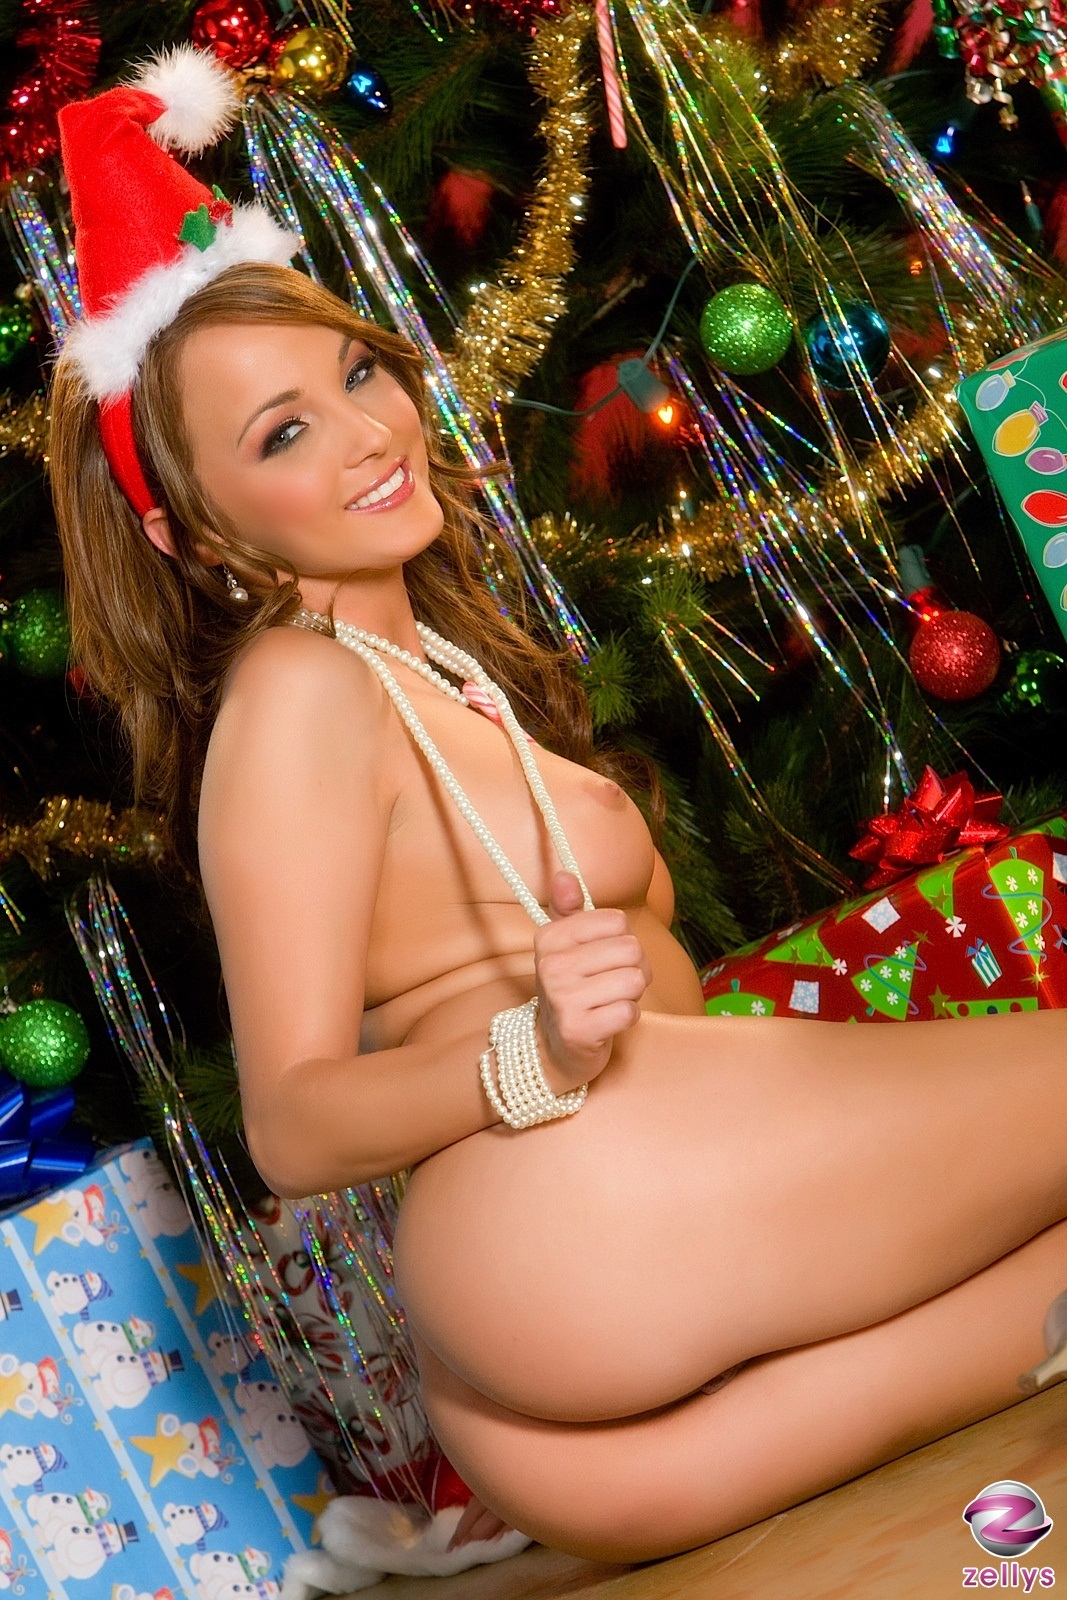 Babe today jessica jaymes xxx jessica jaymes nude christmas xxpicss mobile porn pics